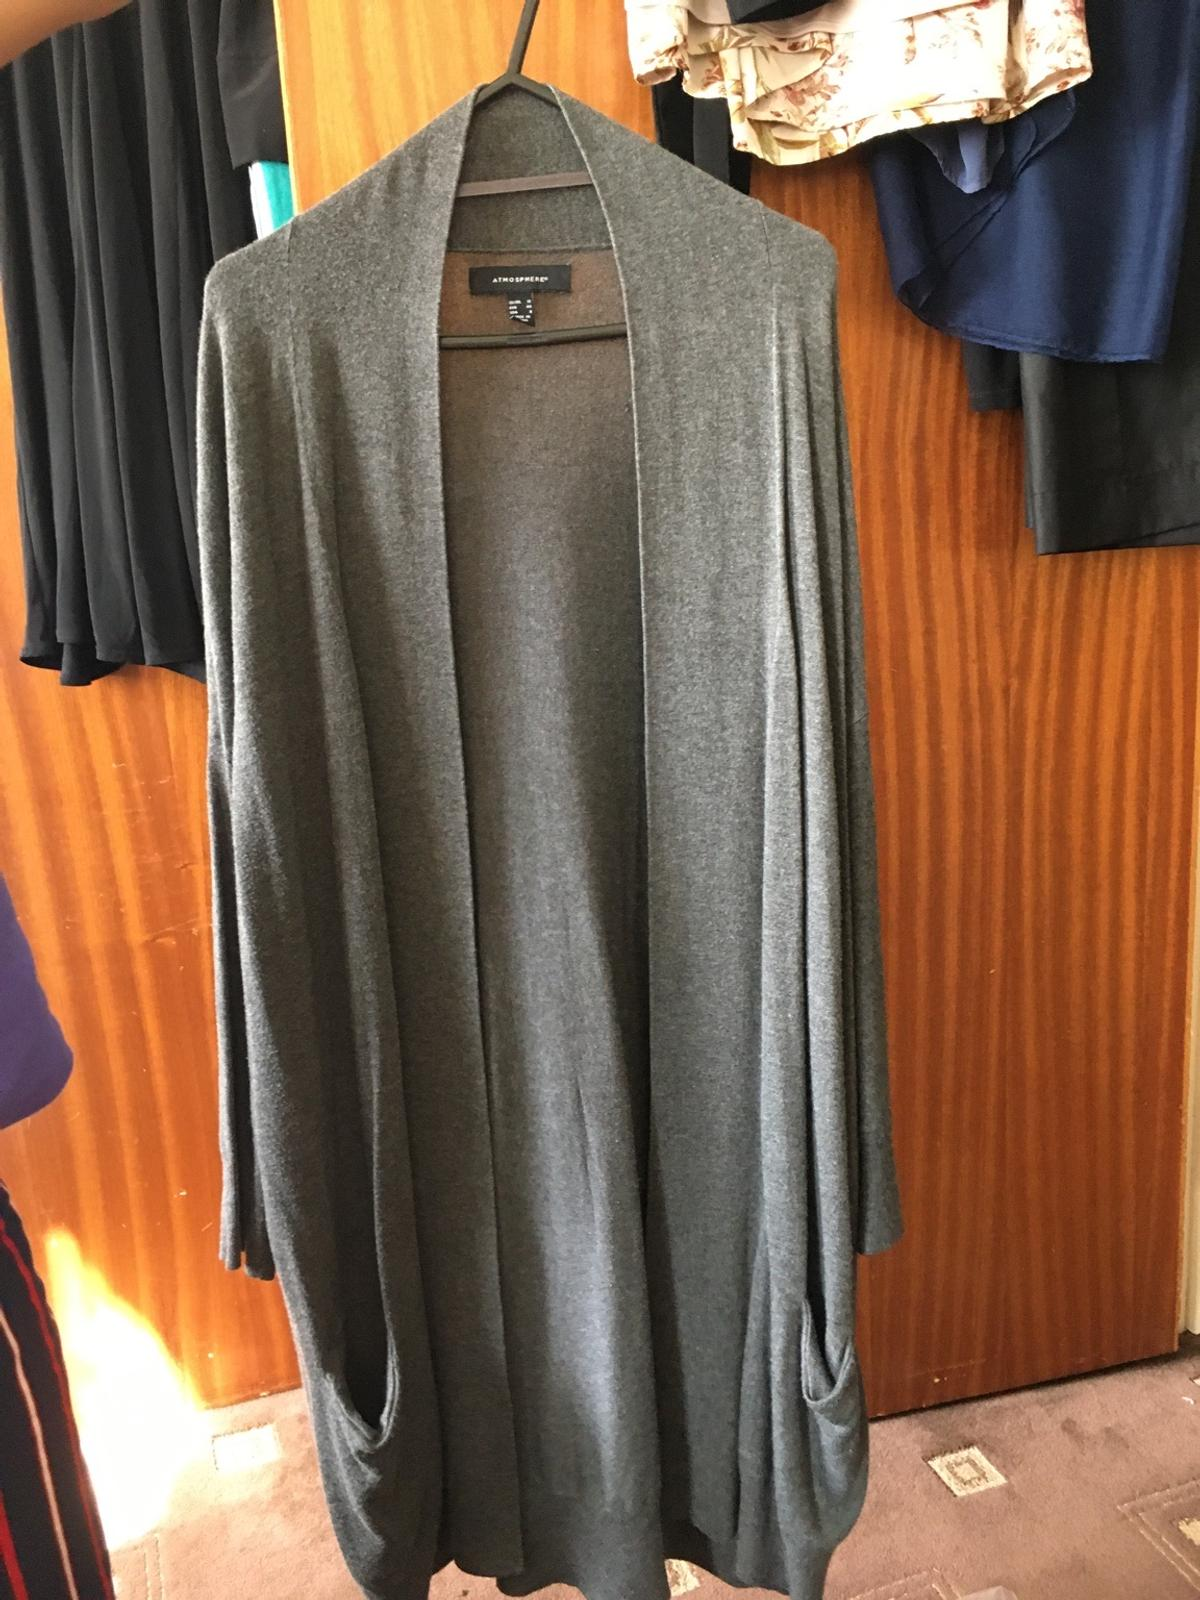 Like new ladies cardigan from Primark in size 12